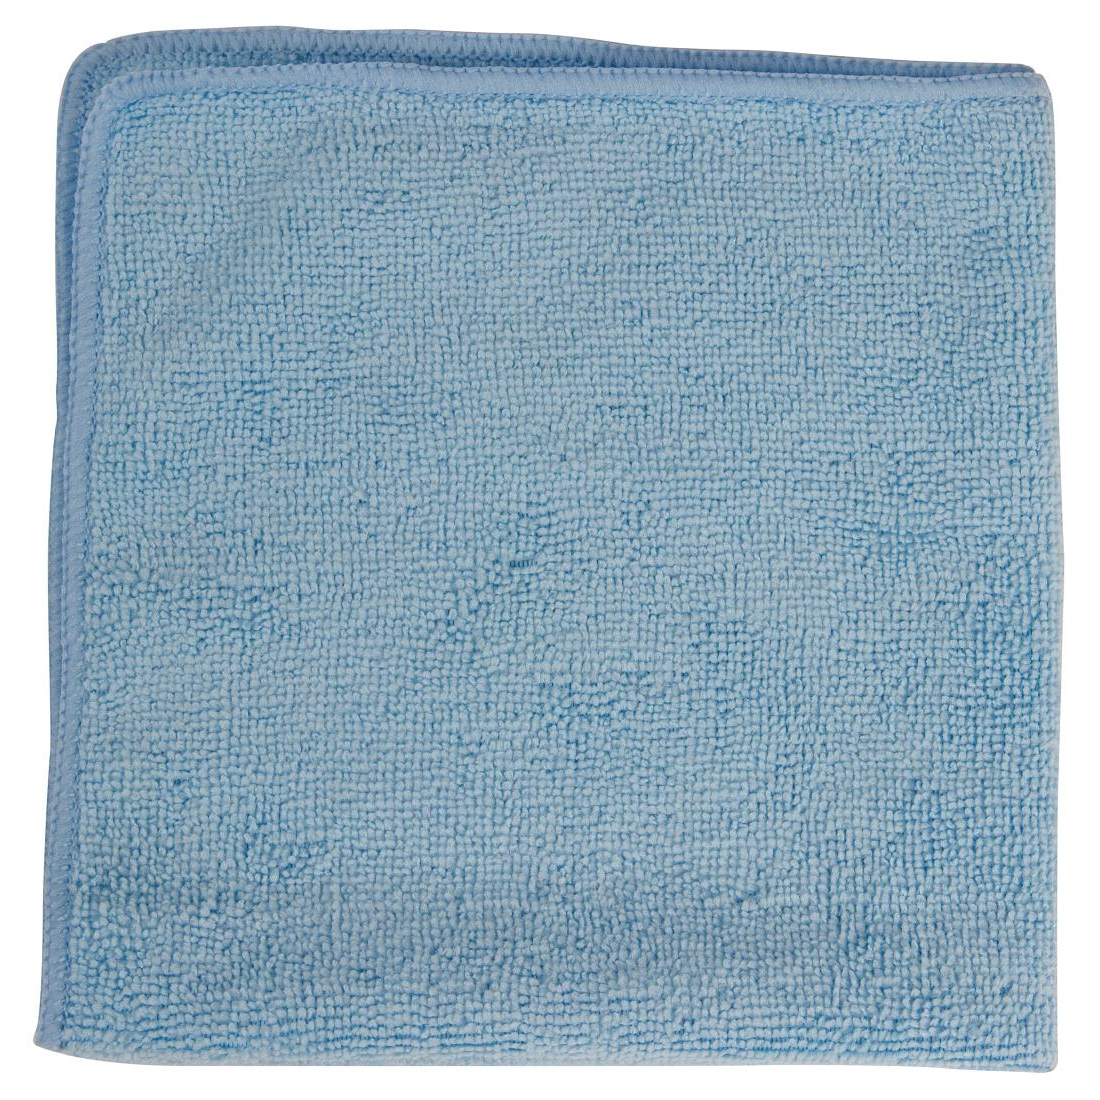 Rubbermaid Pro Microfibre Cloth Blue